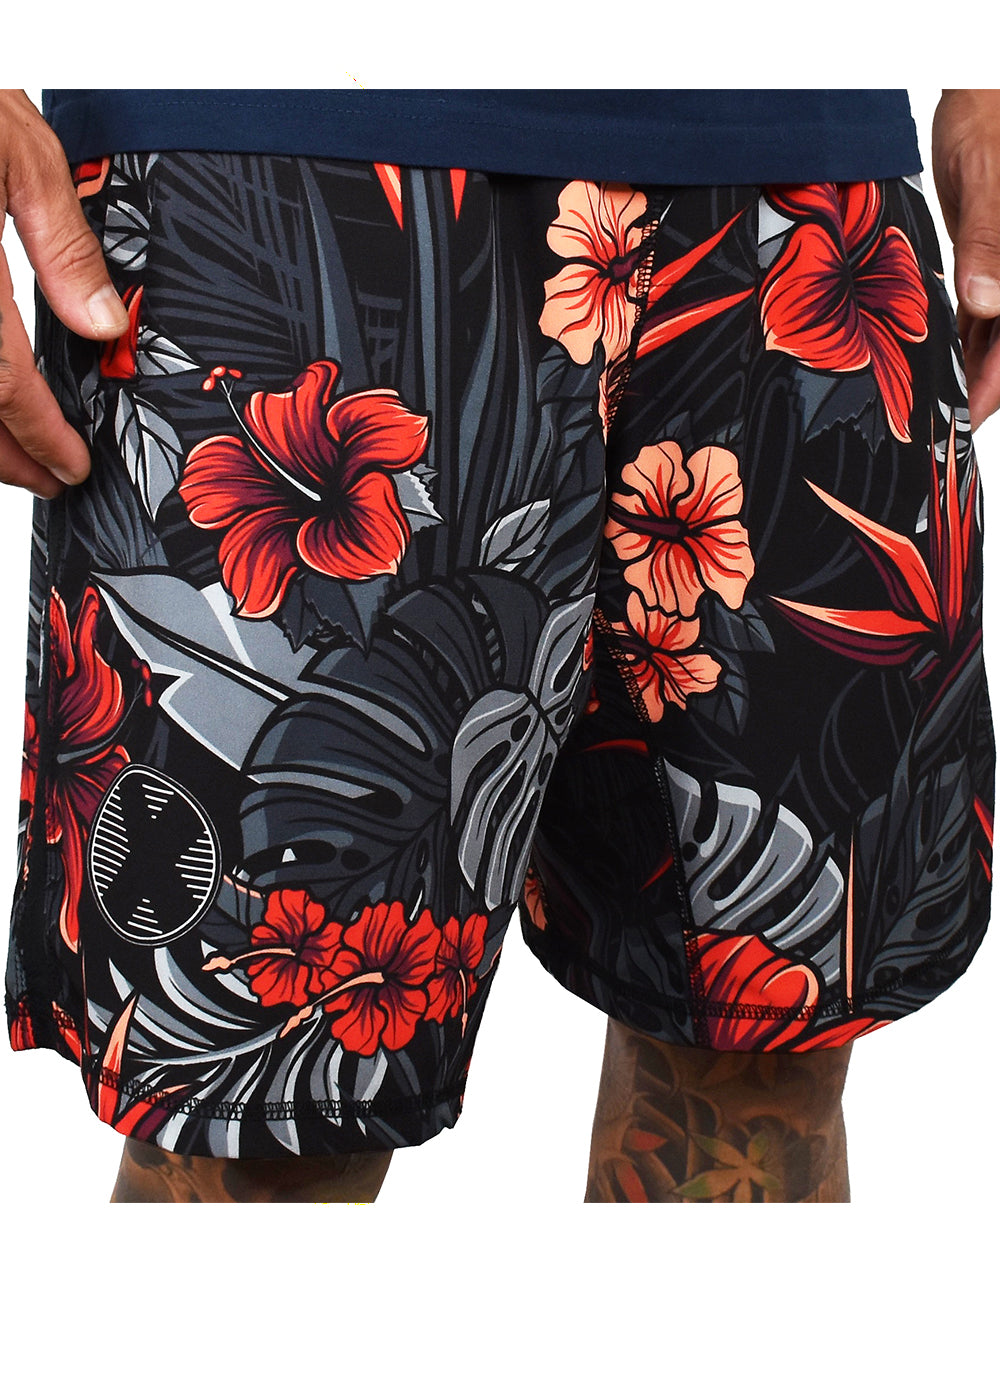 Men's 'Firebiscus' Hybrid Shorts